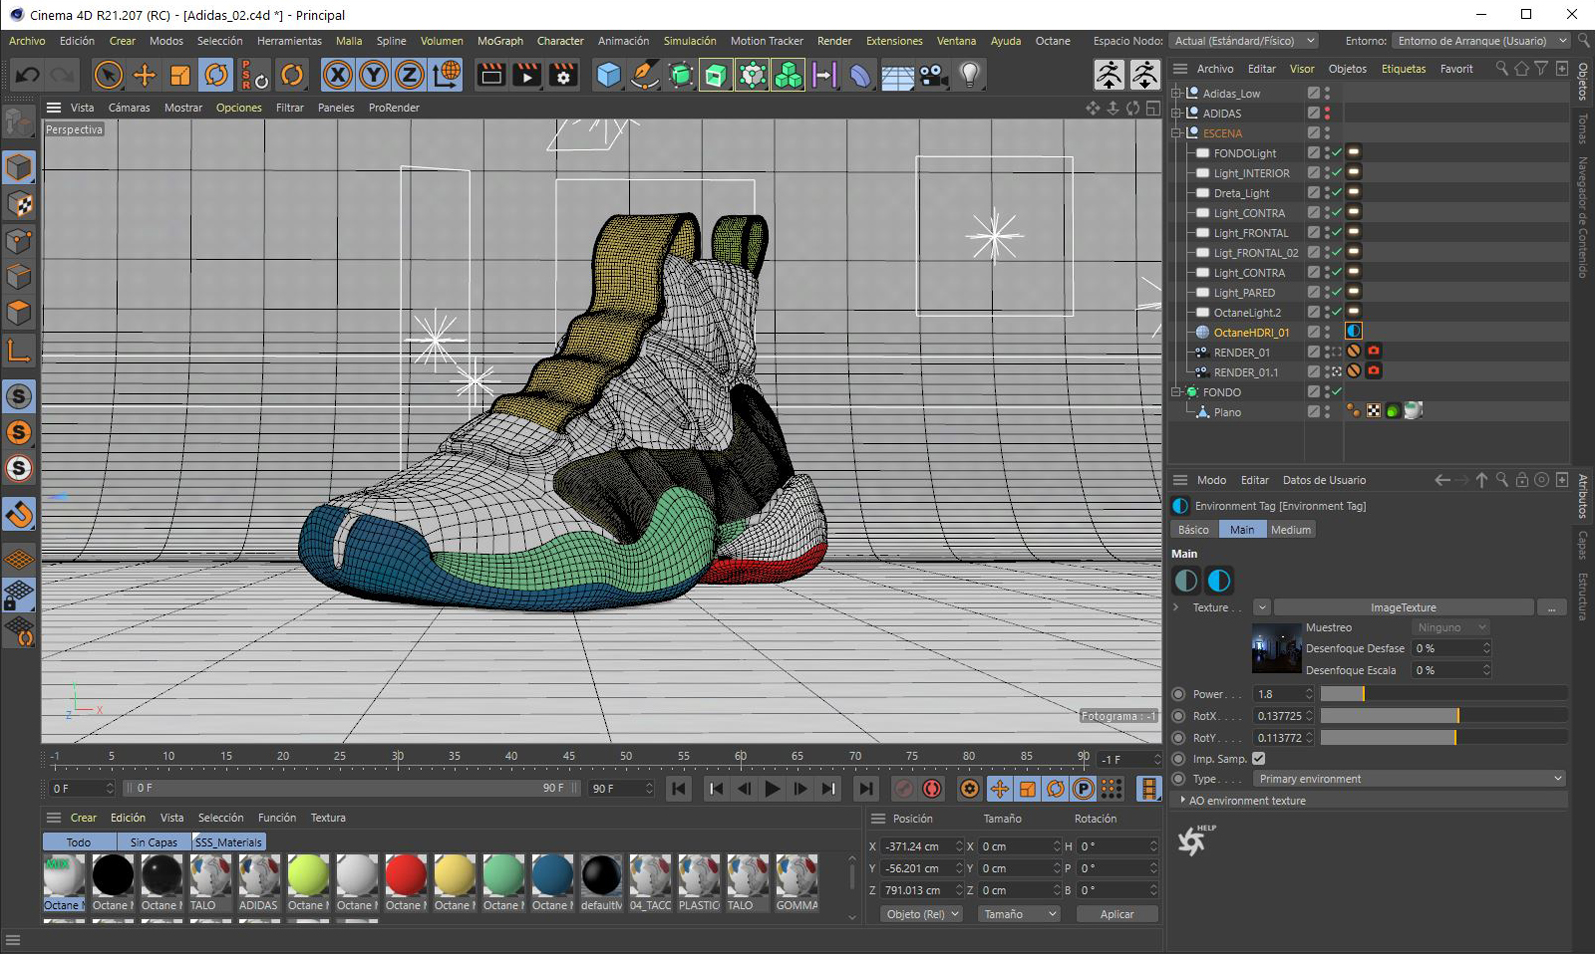 3D modelling software and the latest advances in rendering engines, which allow for greater complexity in 3D images.